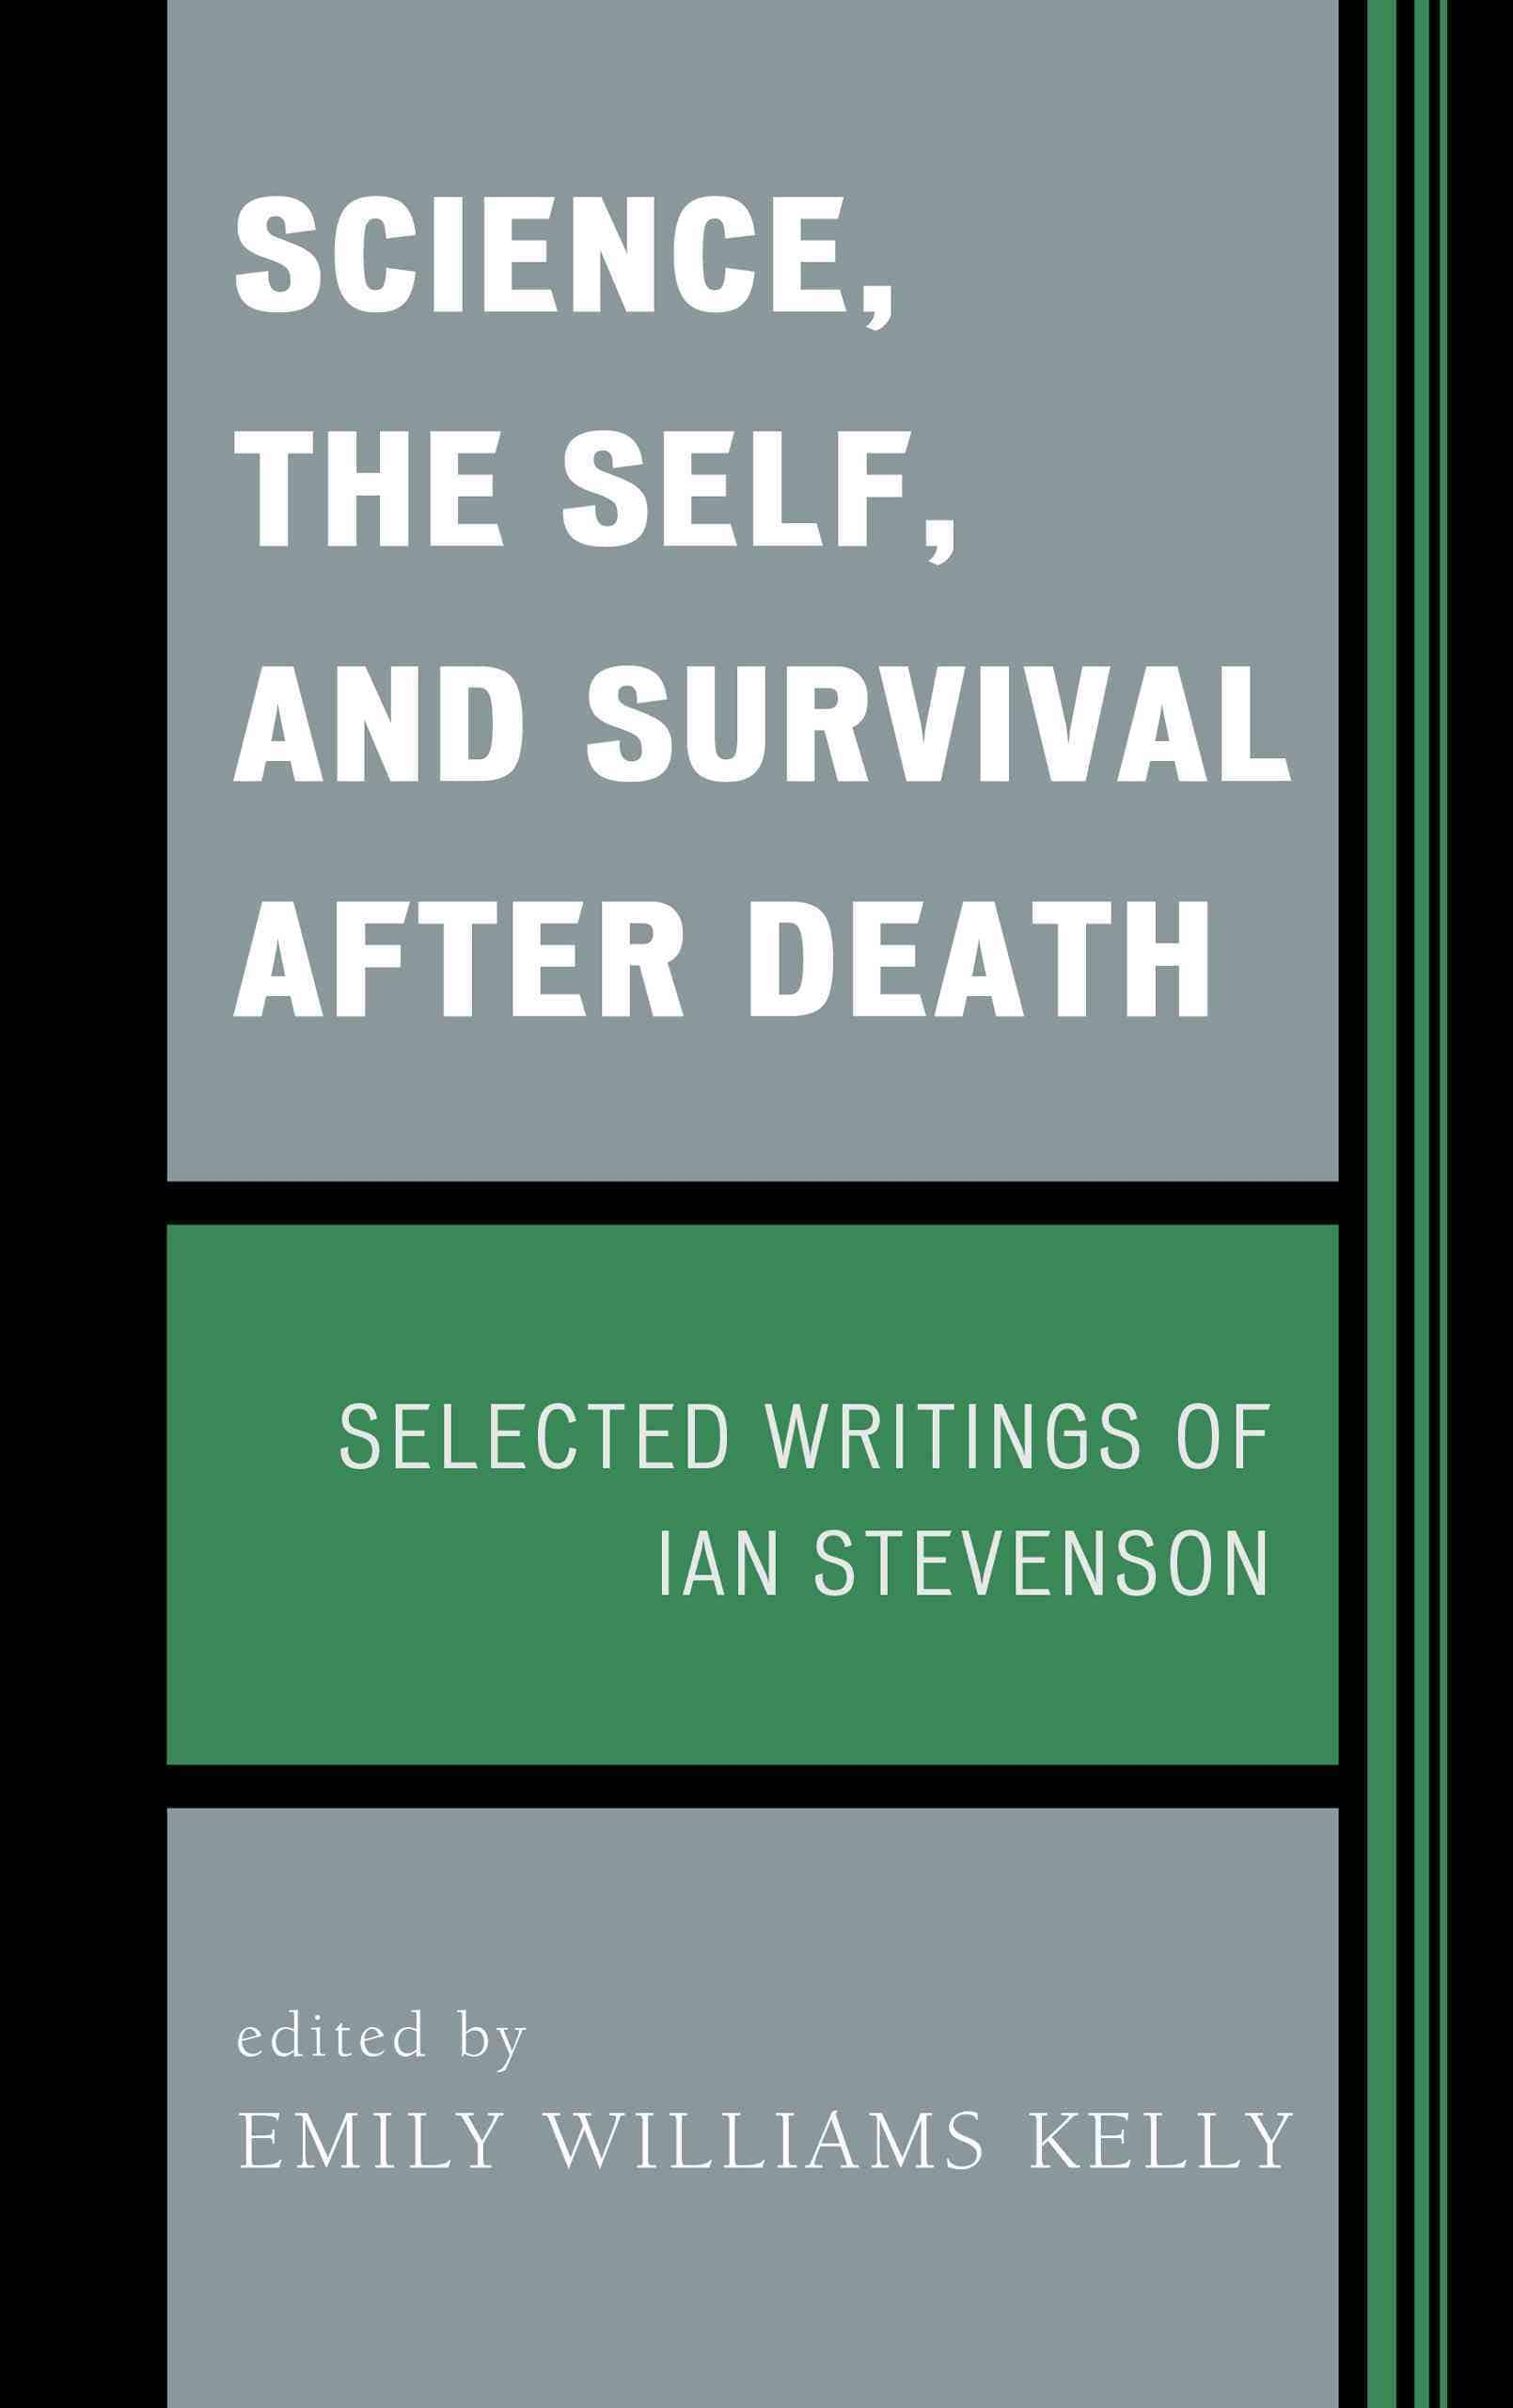 Science, the Self, and Survival After Death: Selected Writings of Ian Stevenson (Hardcover)